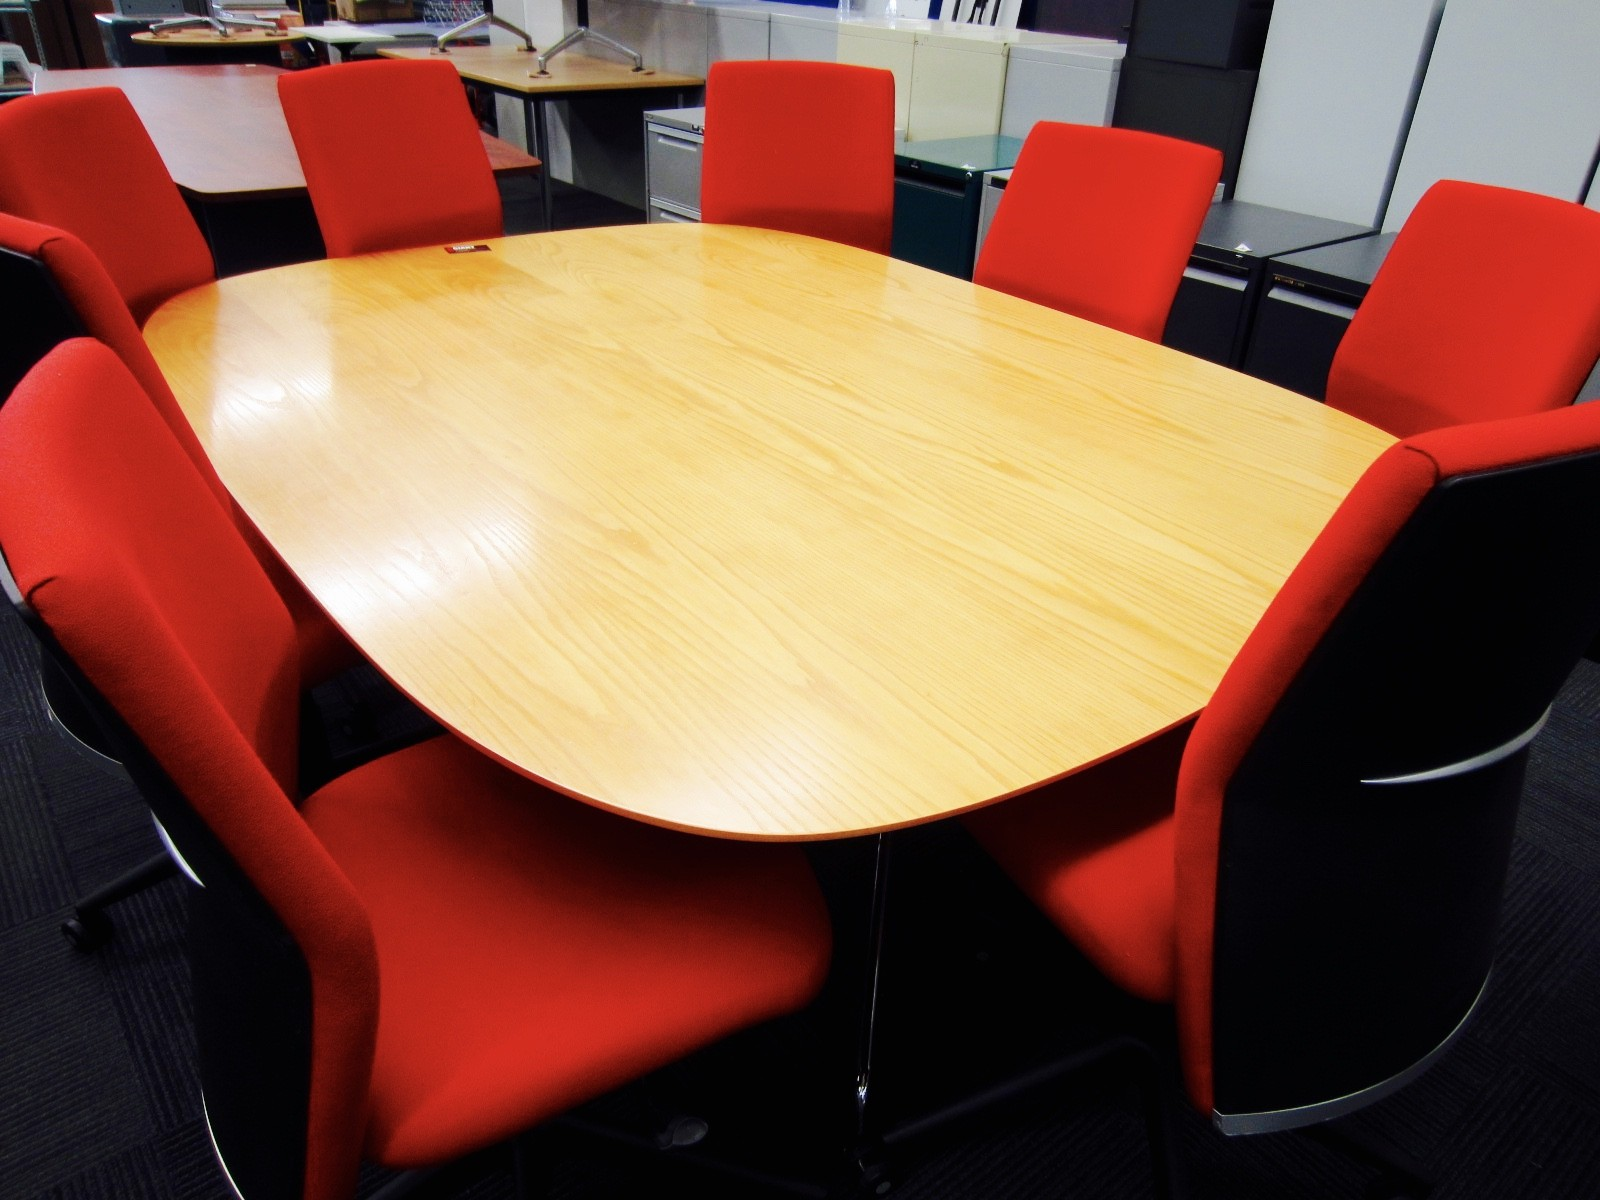 giant office supplies. GIANT Office Furniture - Supplies \u0026 All | Search Second Hand Giant A